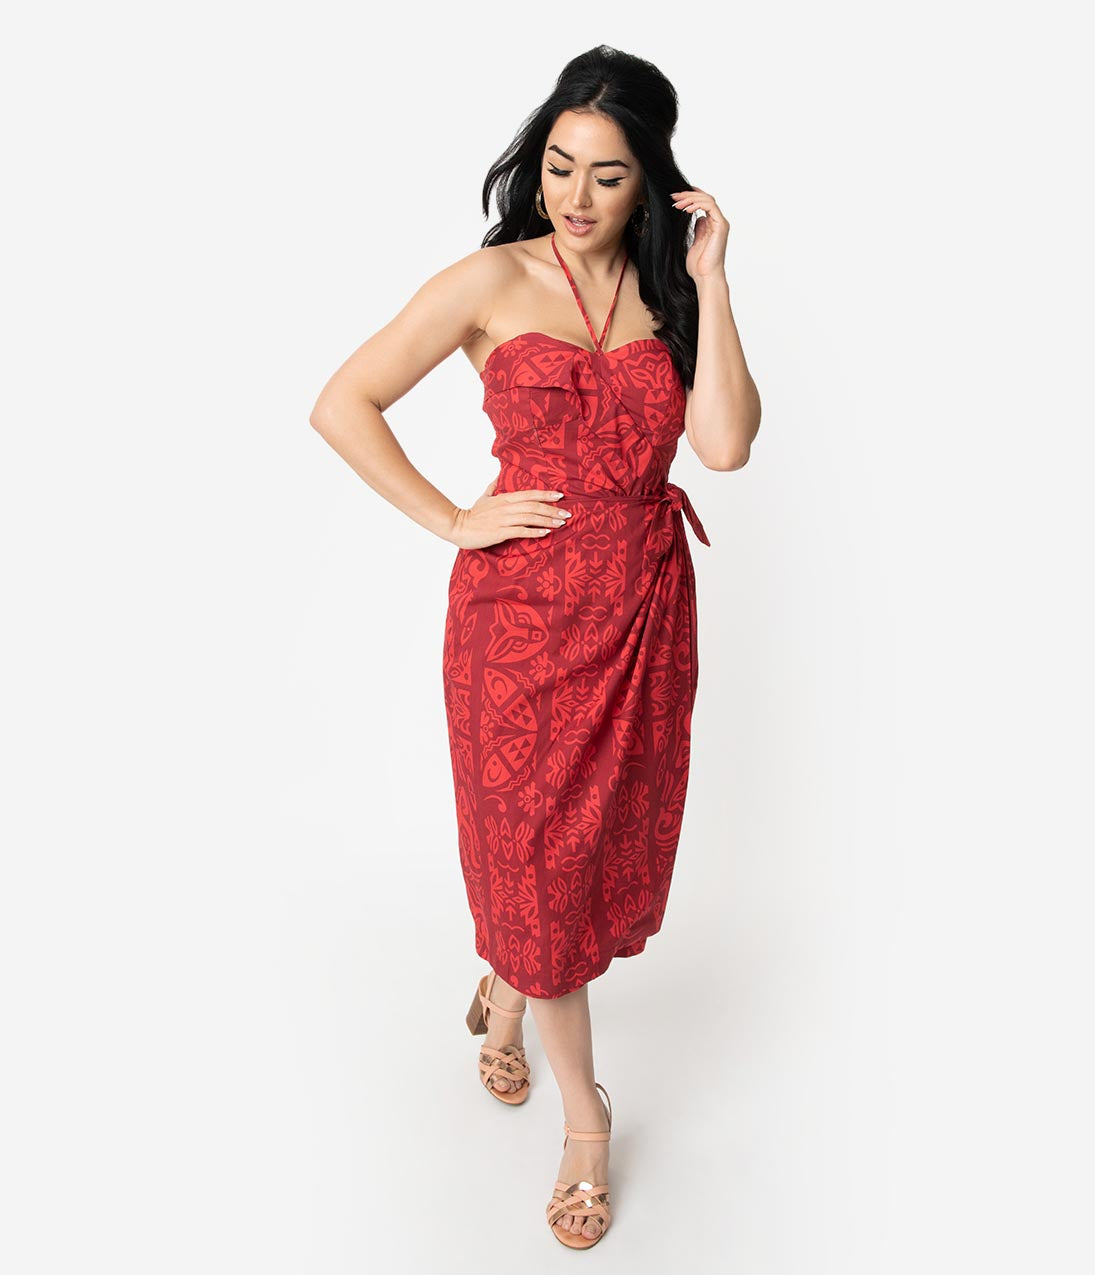 New Fifties Dresses | 50s Inspired Dresses Alfred Shaheen Red Tiki Pareau Print Sarong $82.00 AT vintagedancer.com